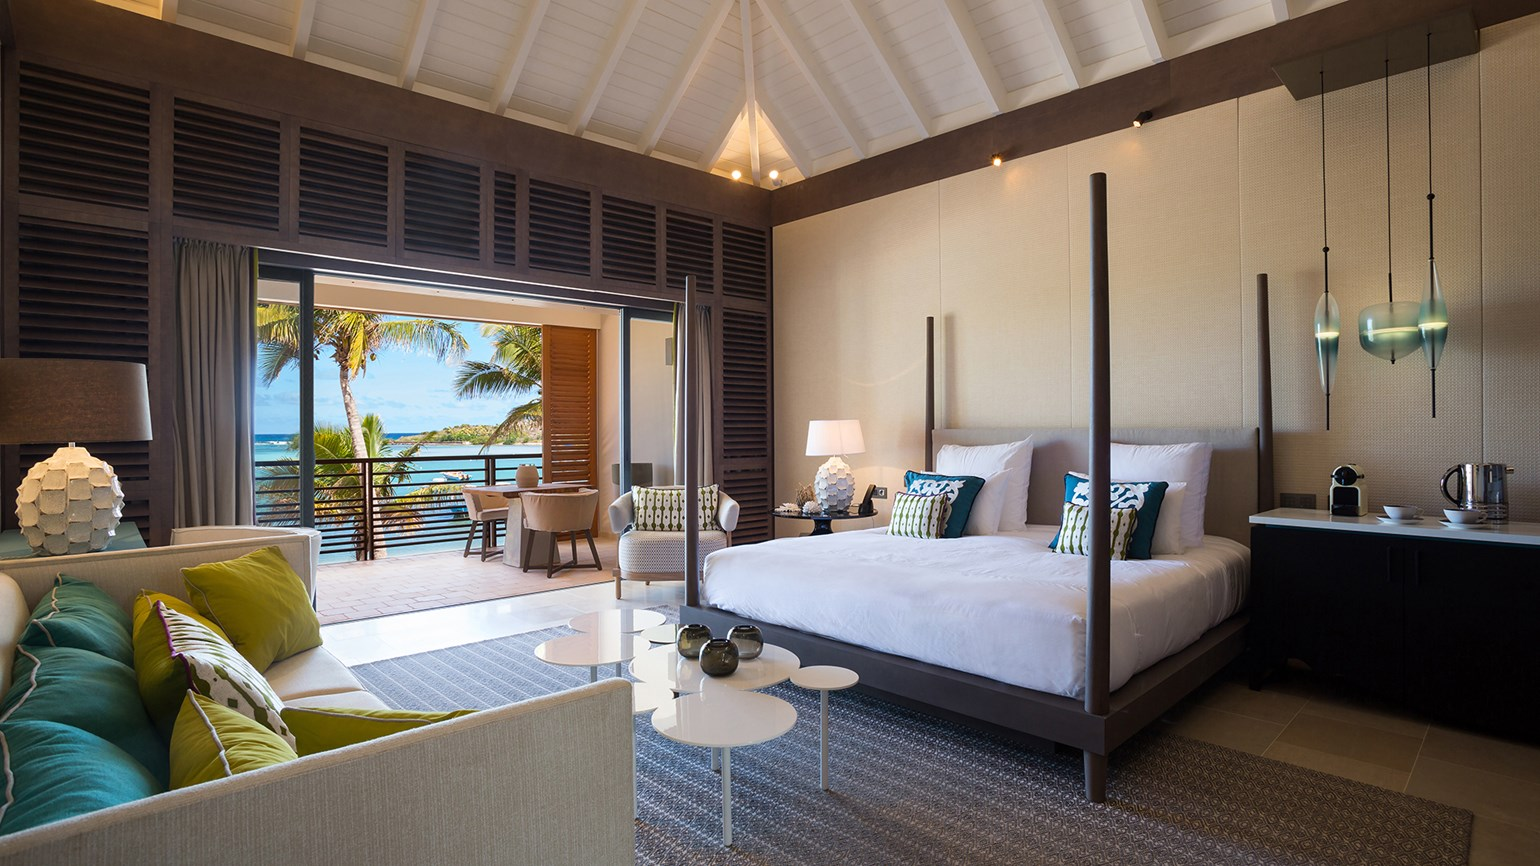 Le Barthelemy, new luxury hotel, to open on St. Barts